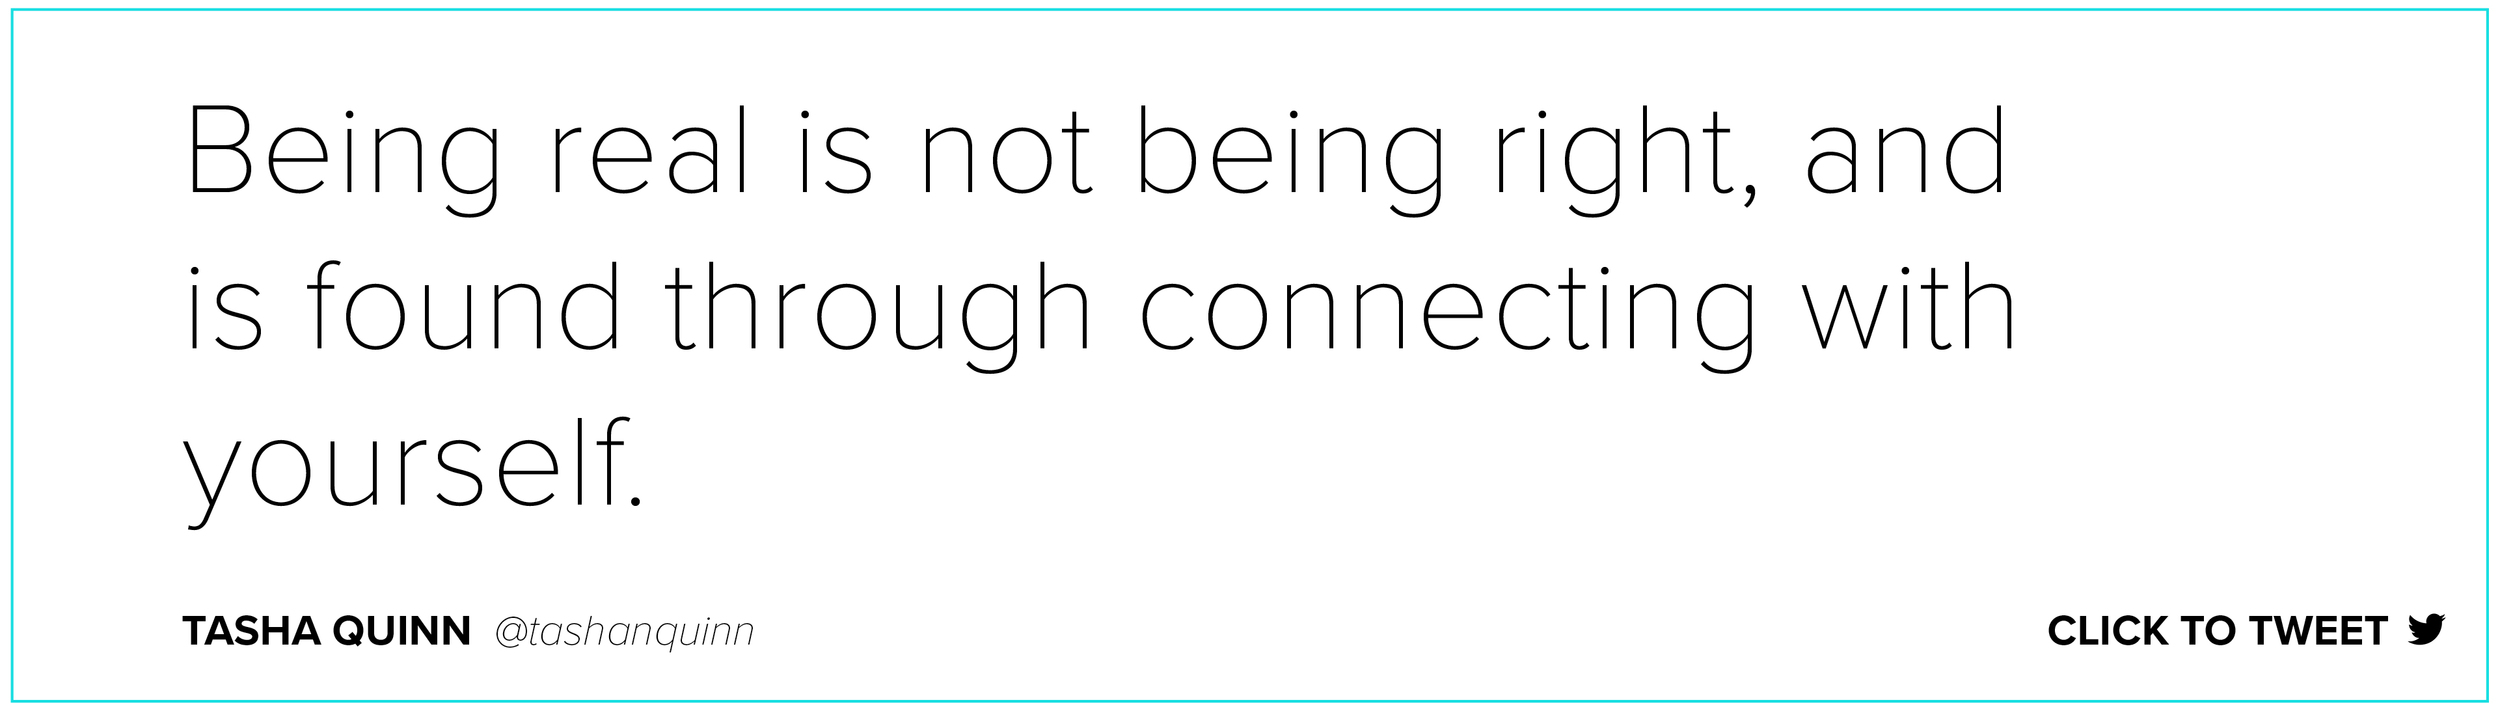 Being real is not being right, and is found through connecting with yourself. Tasha Quinn    @tashanquinn